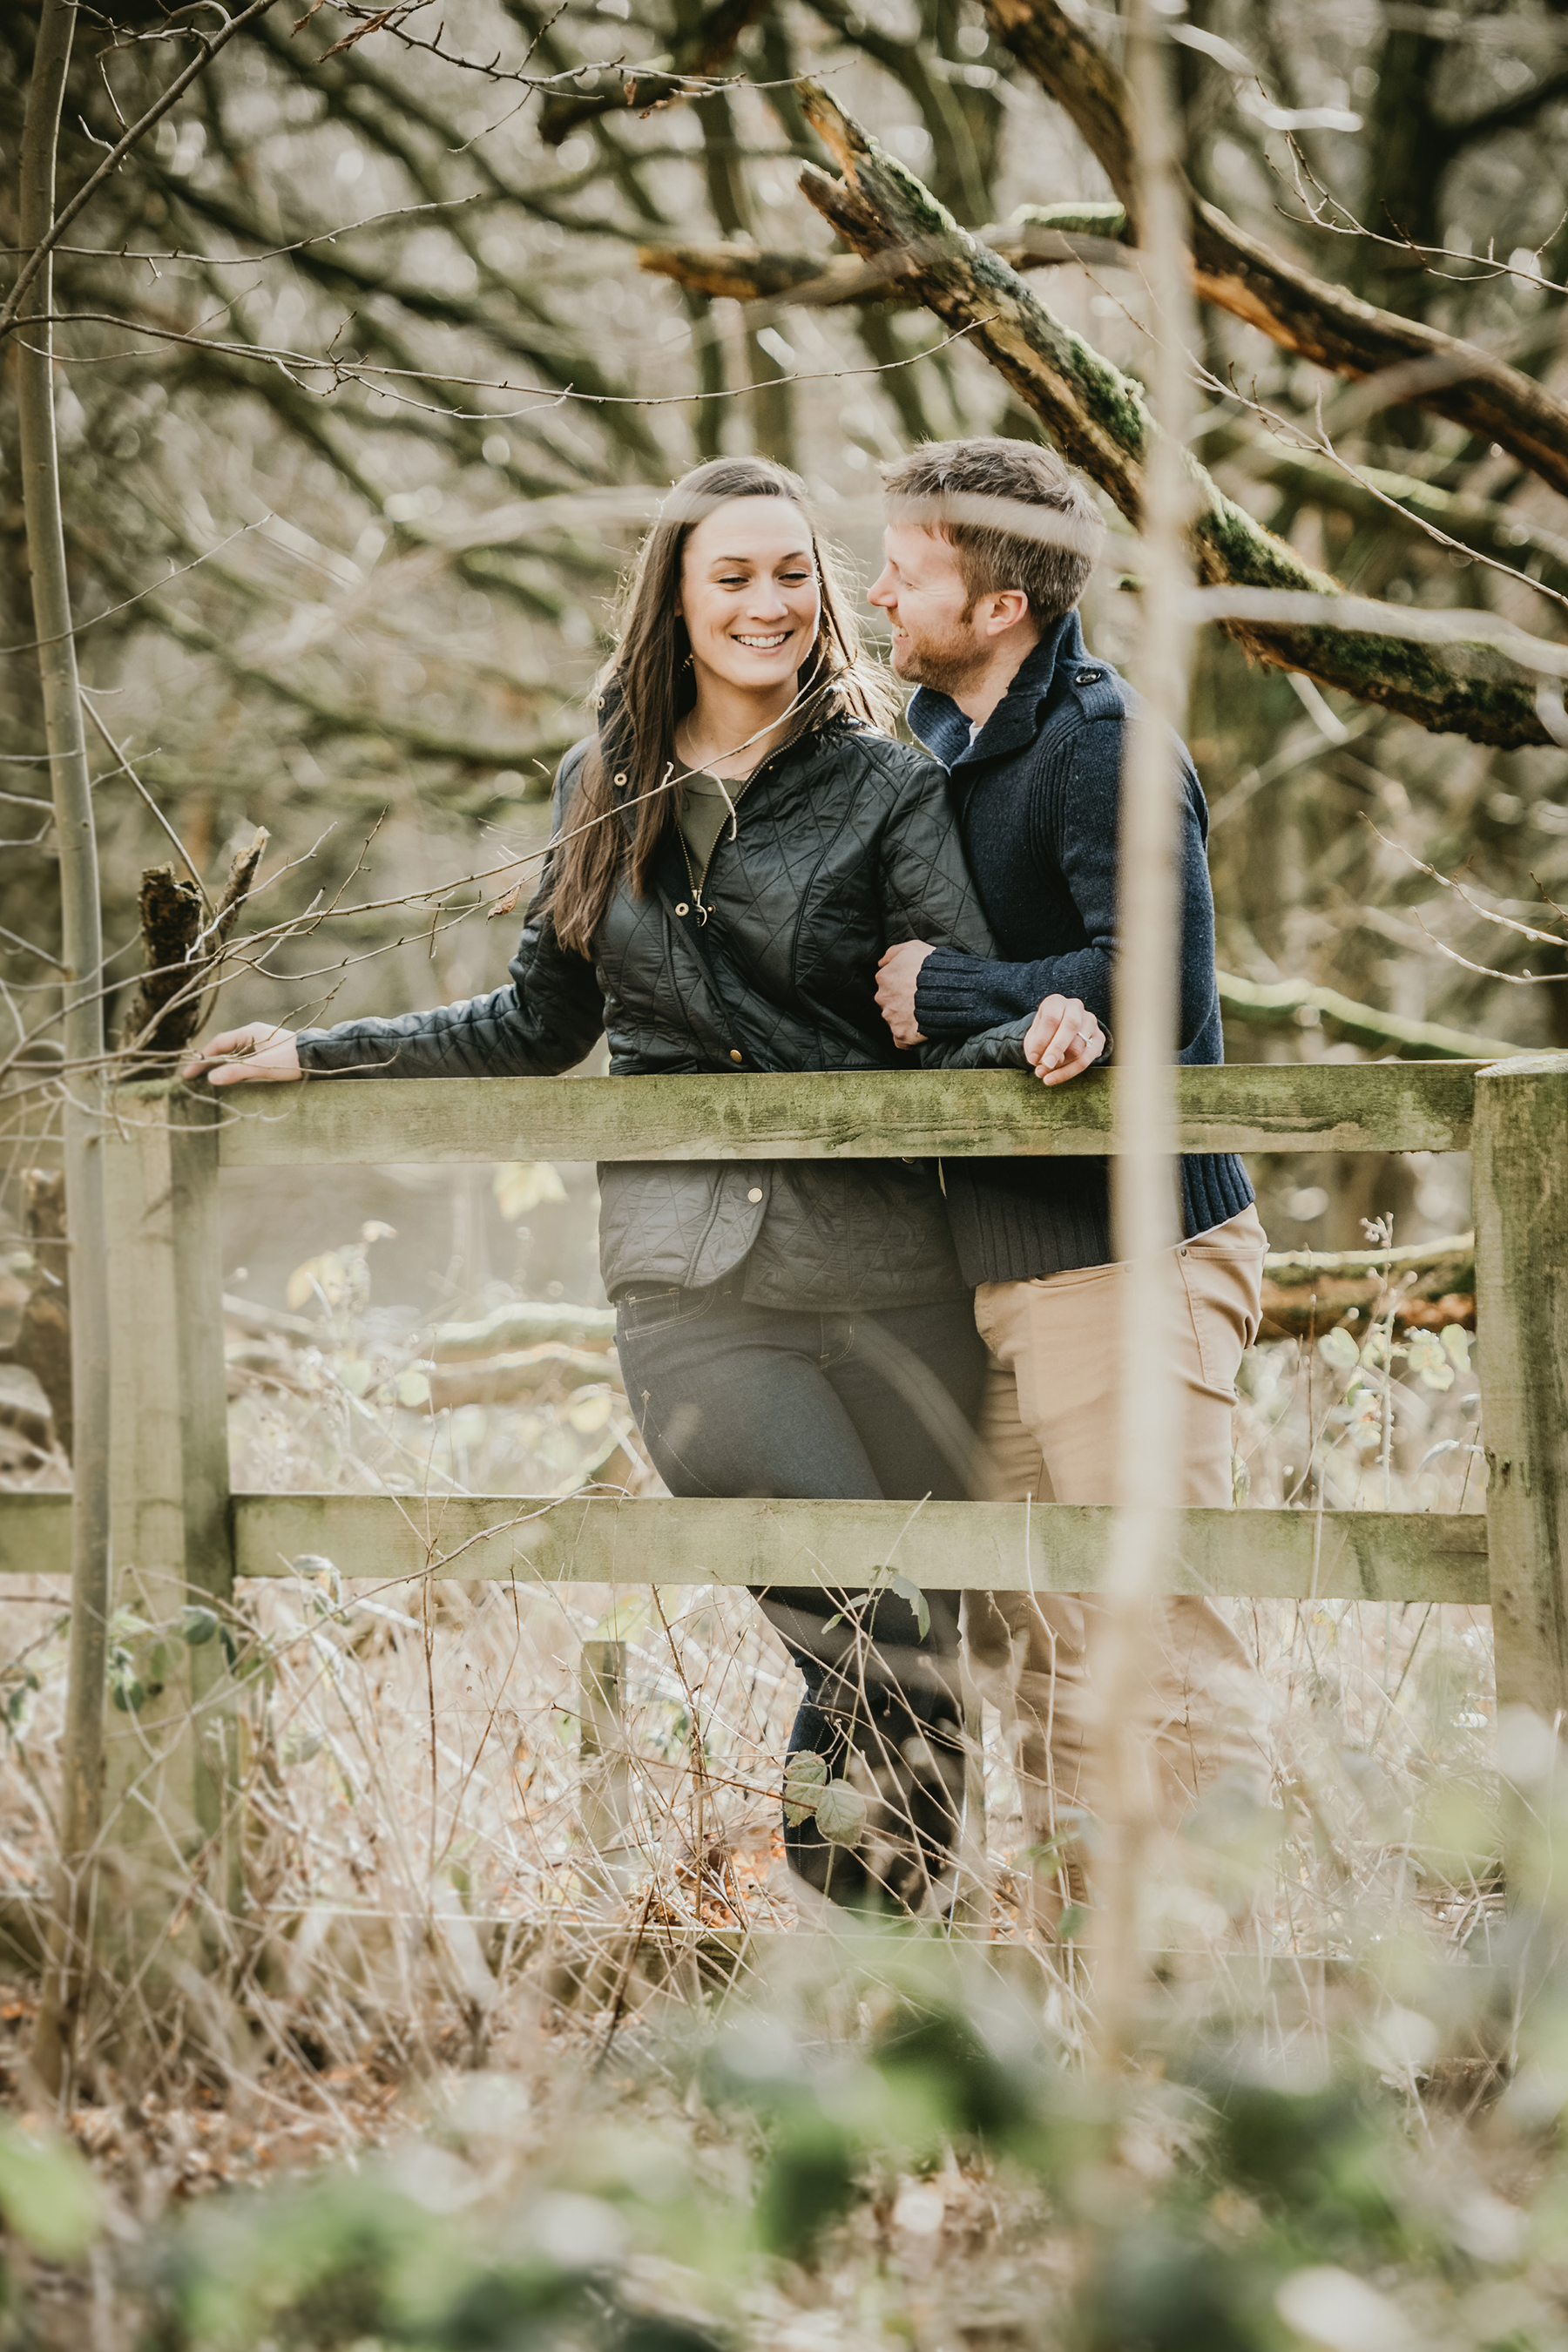 Homey Woodland Engagement Session in Manchester Gary Anderson10